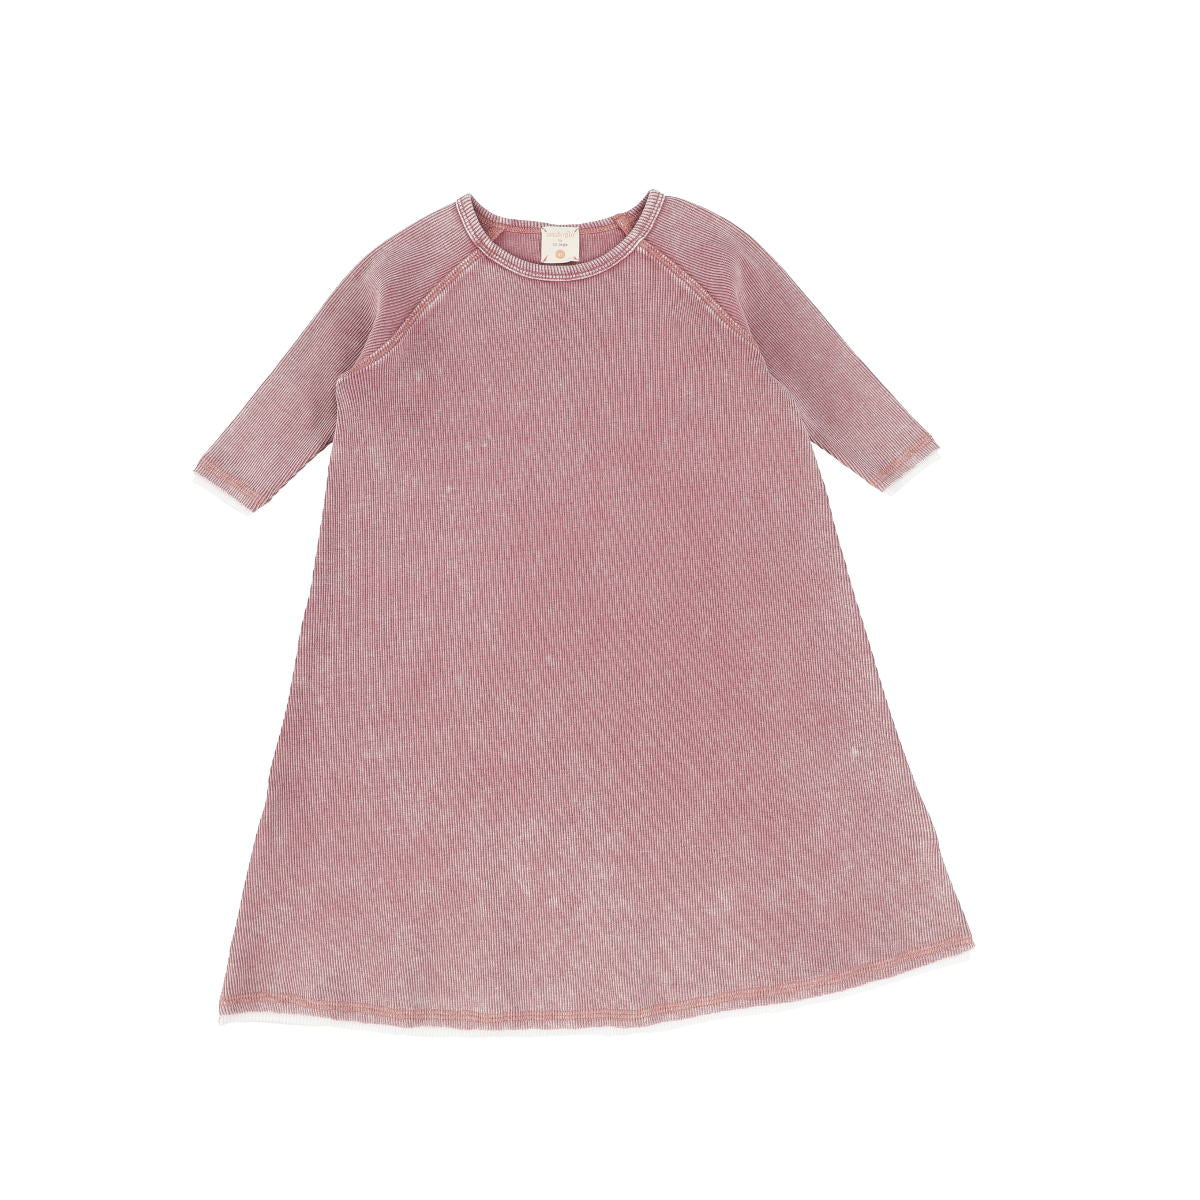 Analogie Pink Wash Denim Three Quarter Sleeve Dress